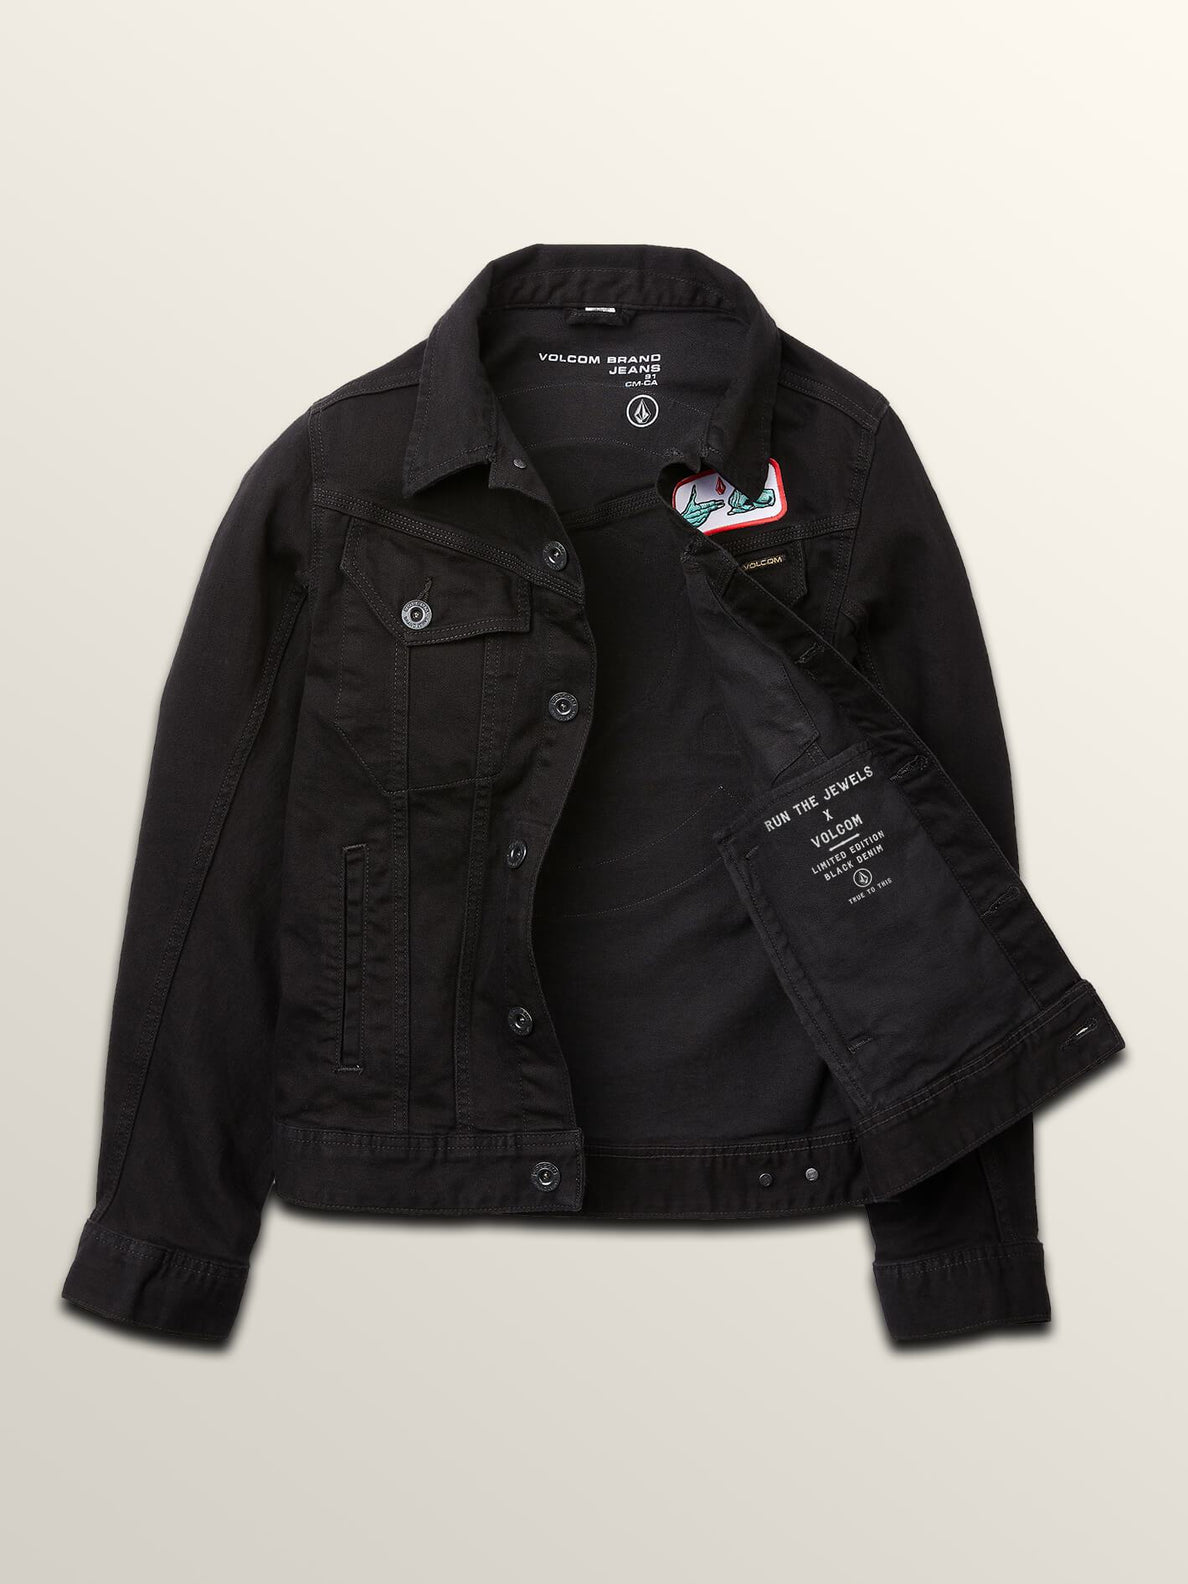 Run The Jewels Legend Has It Denim Jacket In Black, Alternate View